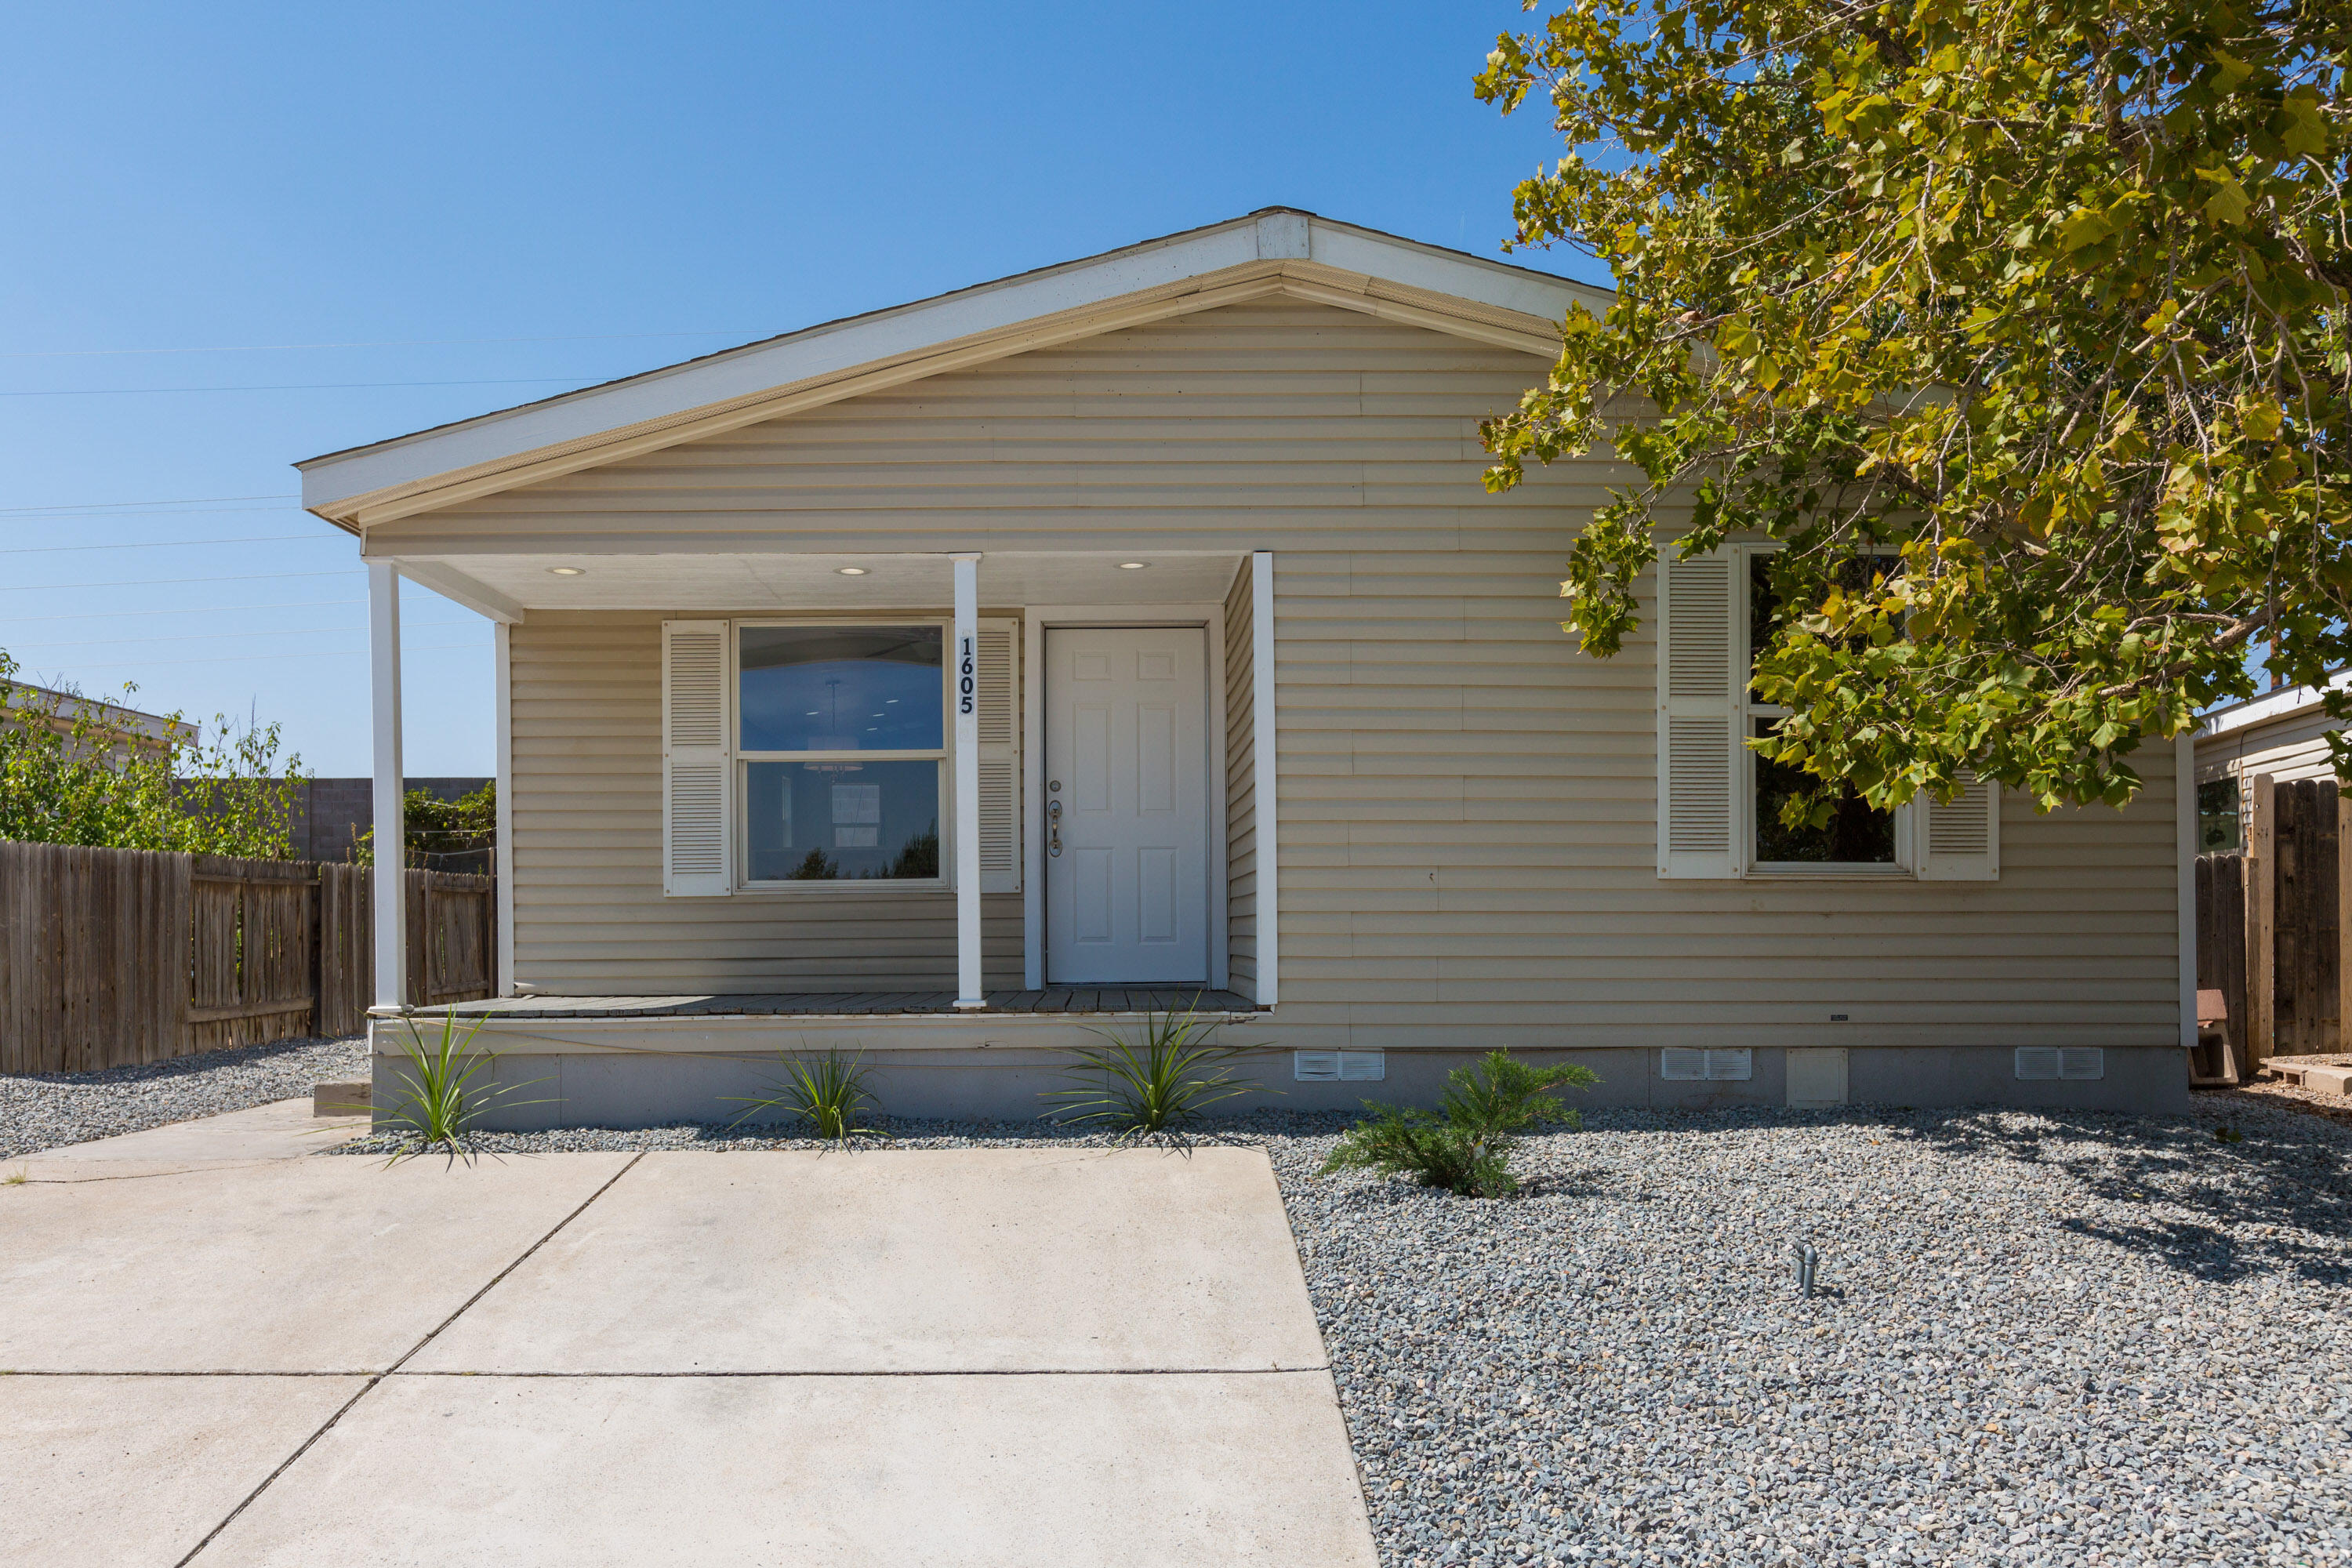 Fully updated 2 bedroom 1 bath 843 sq home. Nice open floorplan with ample kitchen storage, granite countertops and vaulted ceiling's. New tile throughout home. Custom backslash in kitchen and bathroom. Beautiful upgraded tiled shower. Nice size backyard to make your own. CASH only no deactivated title